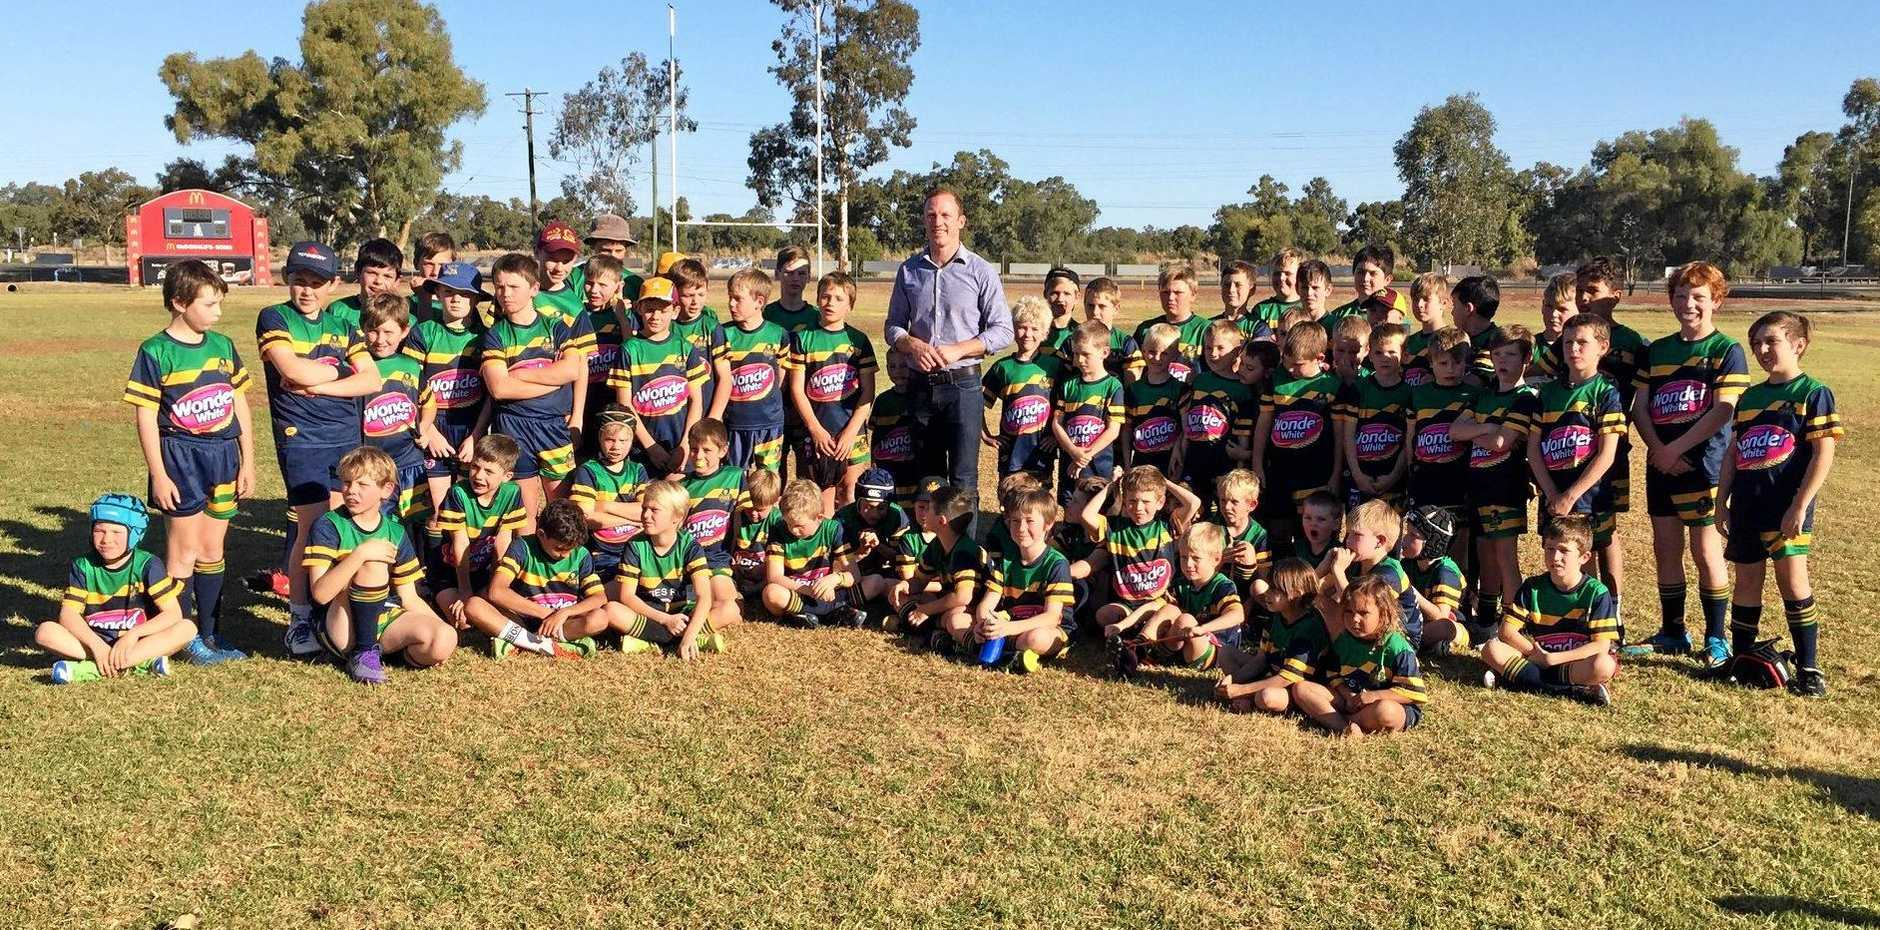 LION'S ROAR: The Carnarvon Cubs, picture here with Darren Lockyer, will feature at the grand final day.